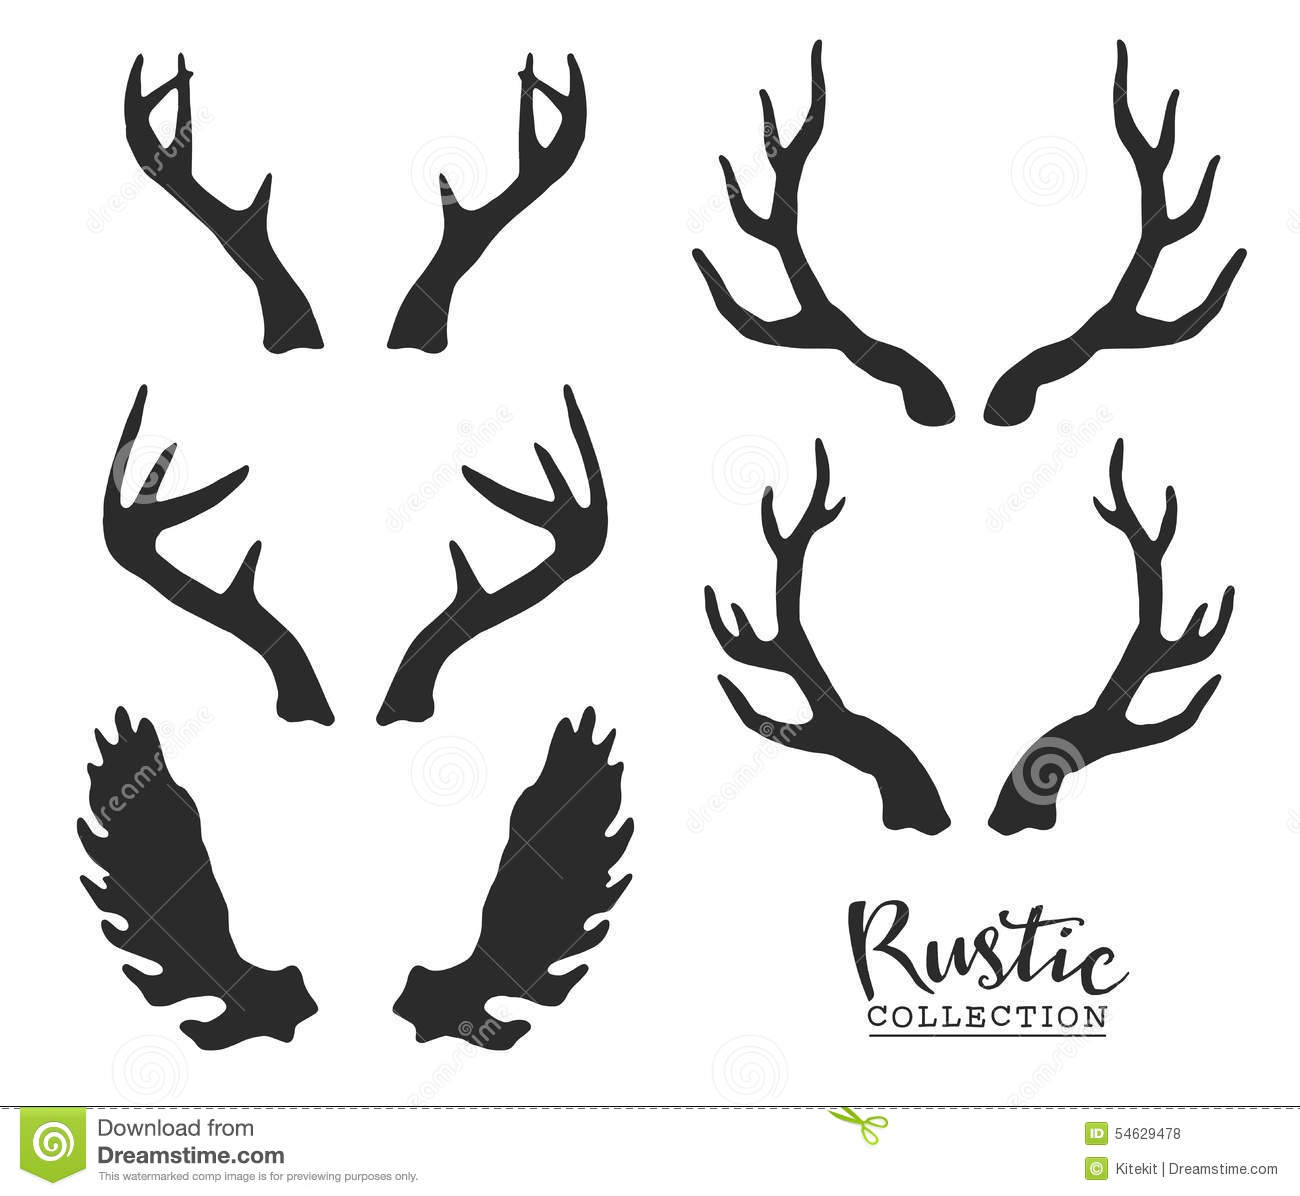 Antler Border Clip Art kU 7CMB0hL3vN58i3aKmezGThcxqVKTRPhg 7CpTFwkvL1c further Deer Antler Clip Art furthermore Silhouette Black Buffalo 17607074 also Caribou 20clipart 20skull furthermore Moose 20clipart 20black 20and 20white. on elk antler drawings clip art